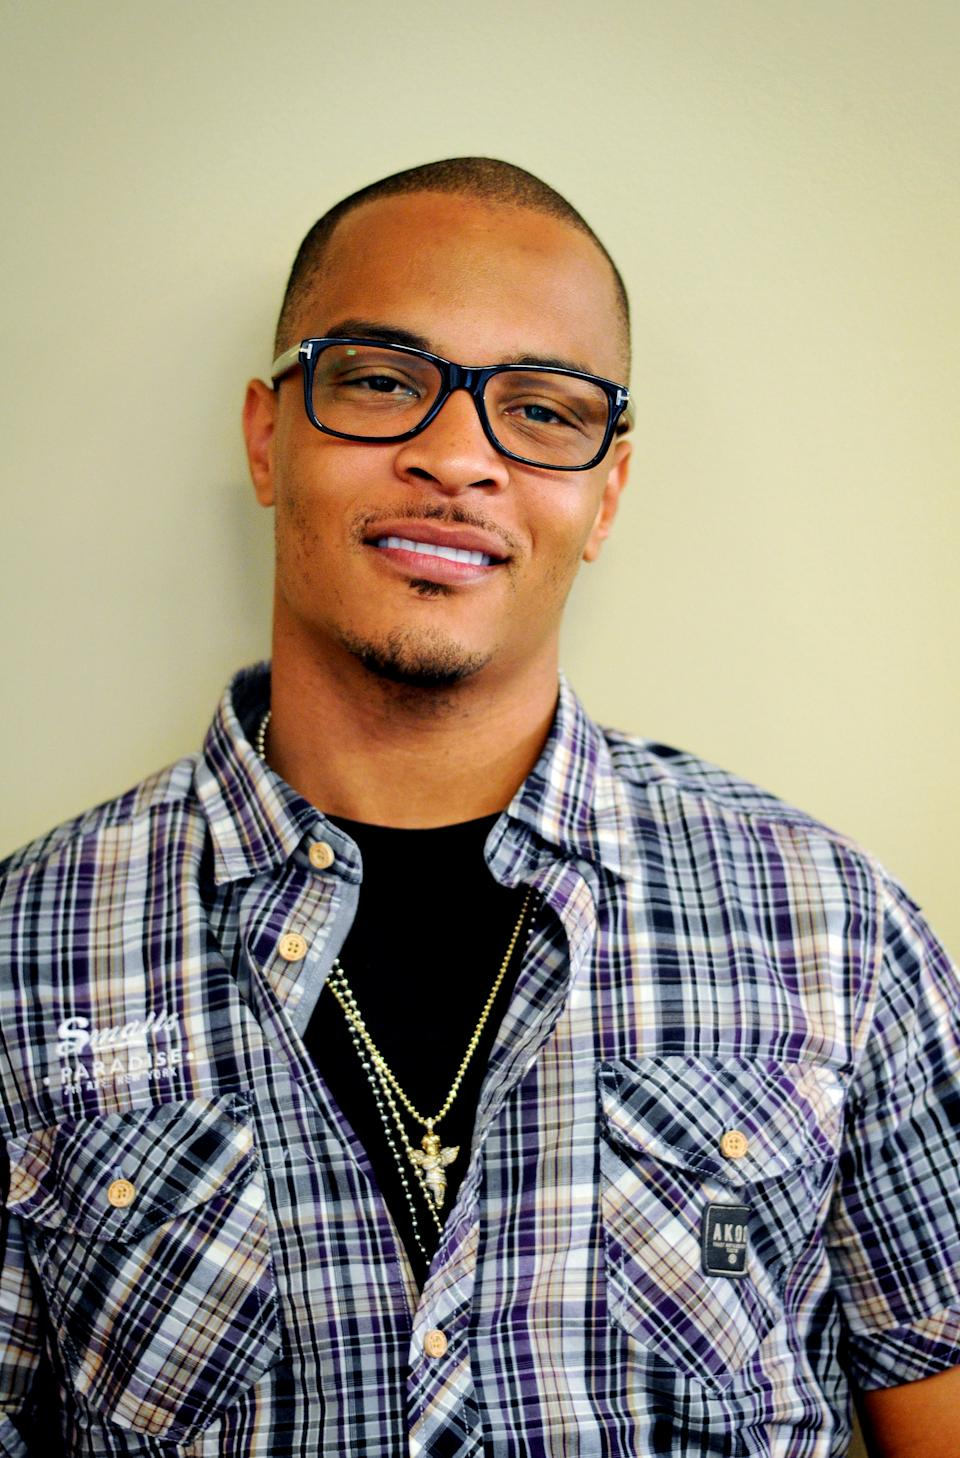 In this Sept. 10, 2012 photo, rapper T.I. is photographed following an interview in Atlanta. Even though T.I. has not produced any major hits lately, the Grammy-winning rapper believes he can still sell a considerable amount of albums based on his stellar track record. (AP Photo/Kat Goduco)